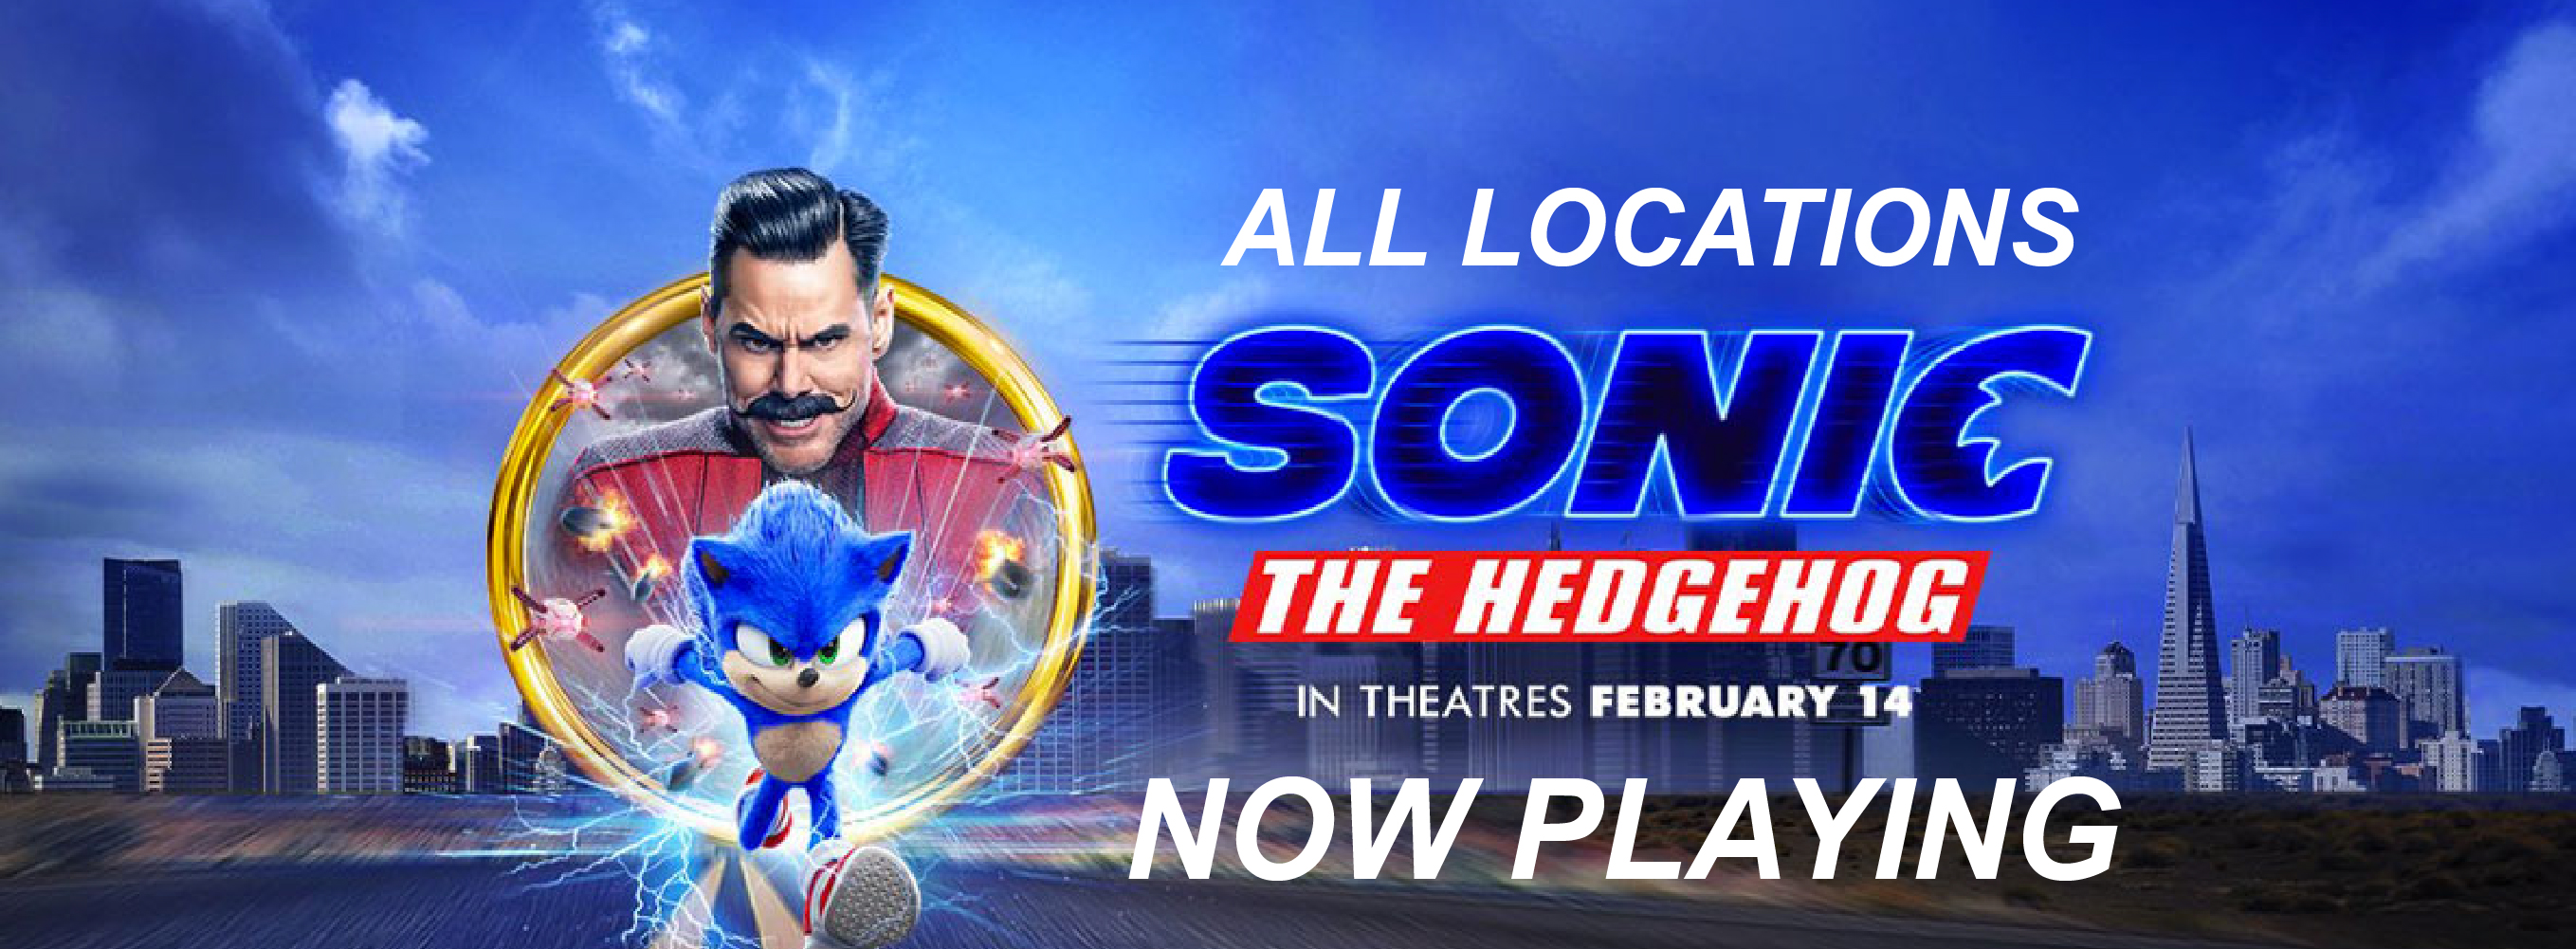 Sonic The Hedgehog Now Playing at All Locations